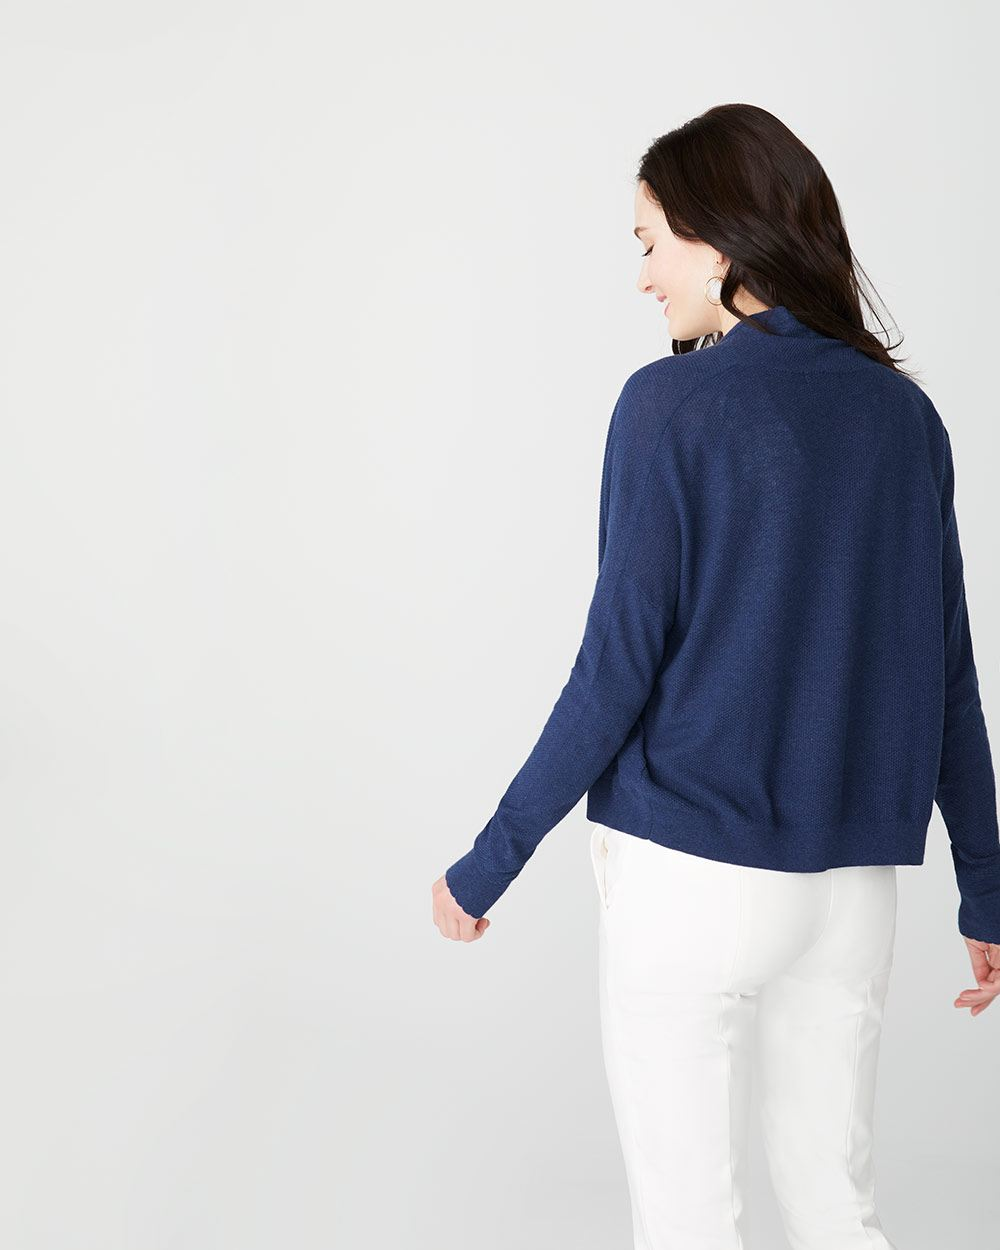 Short open-front cashmere-like cardigan